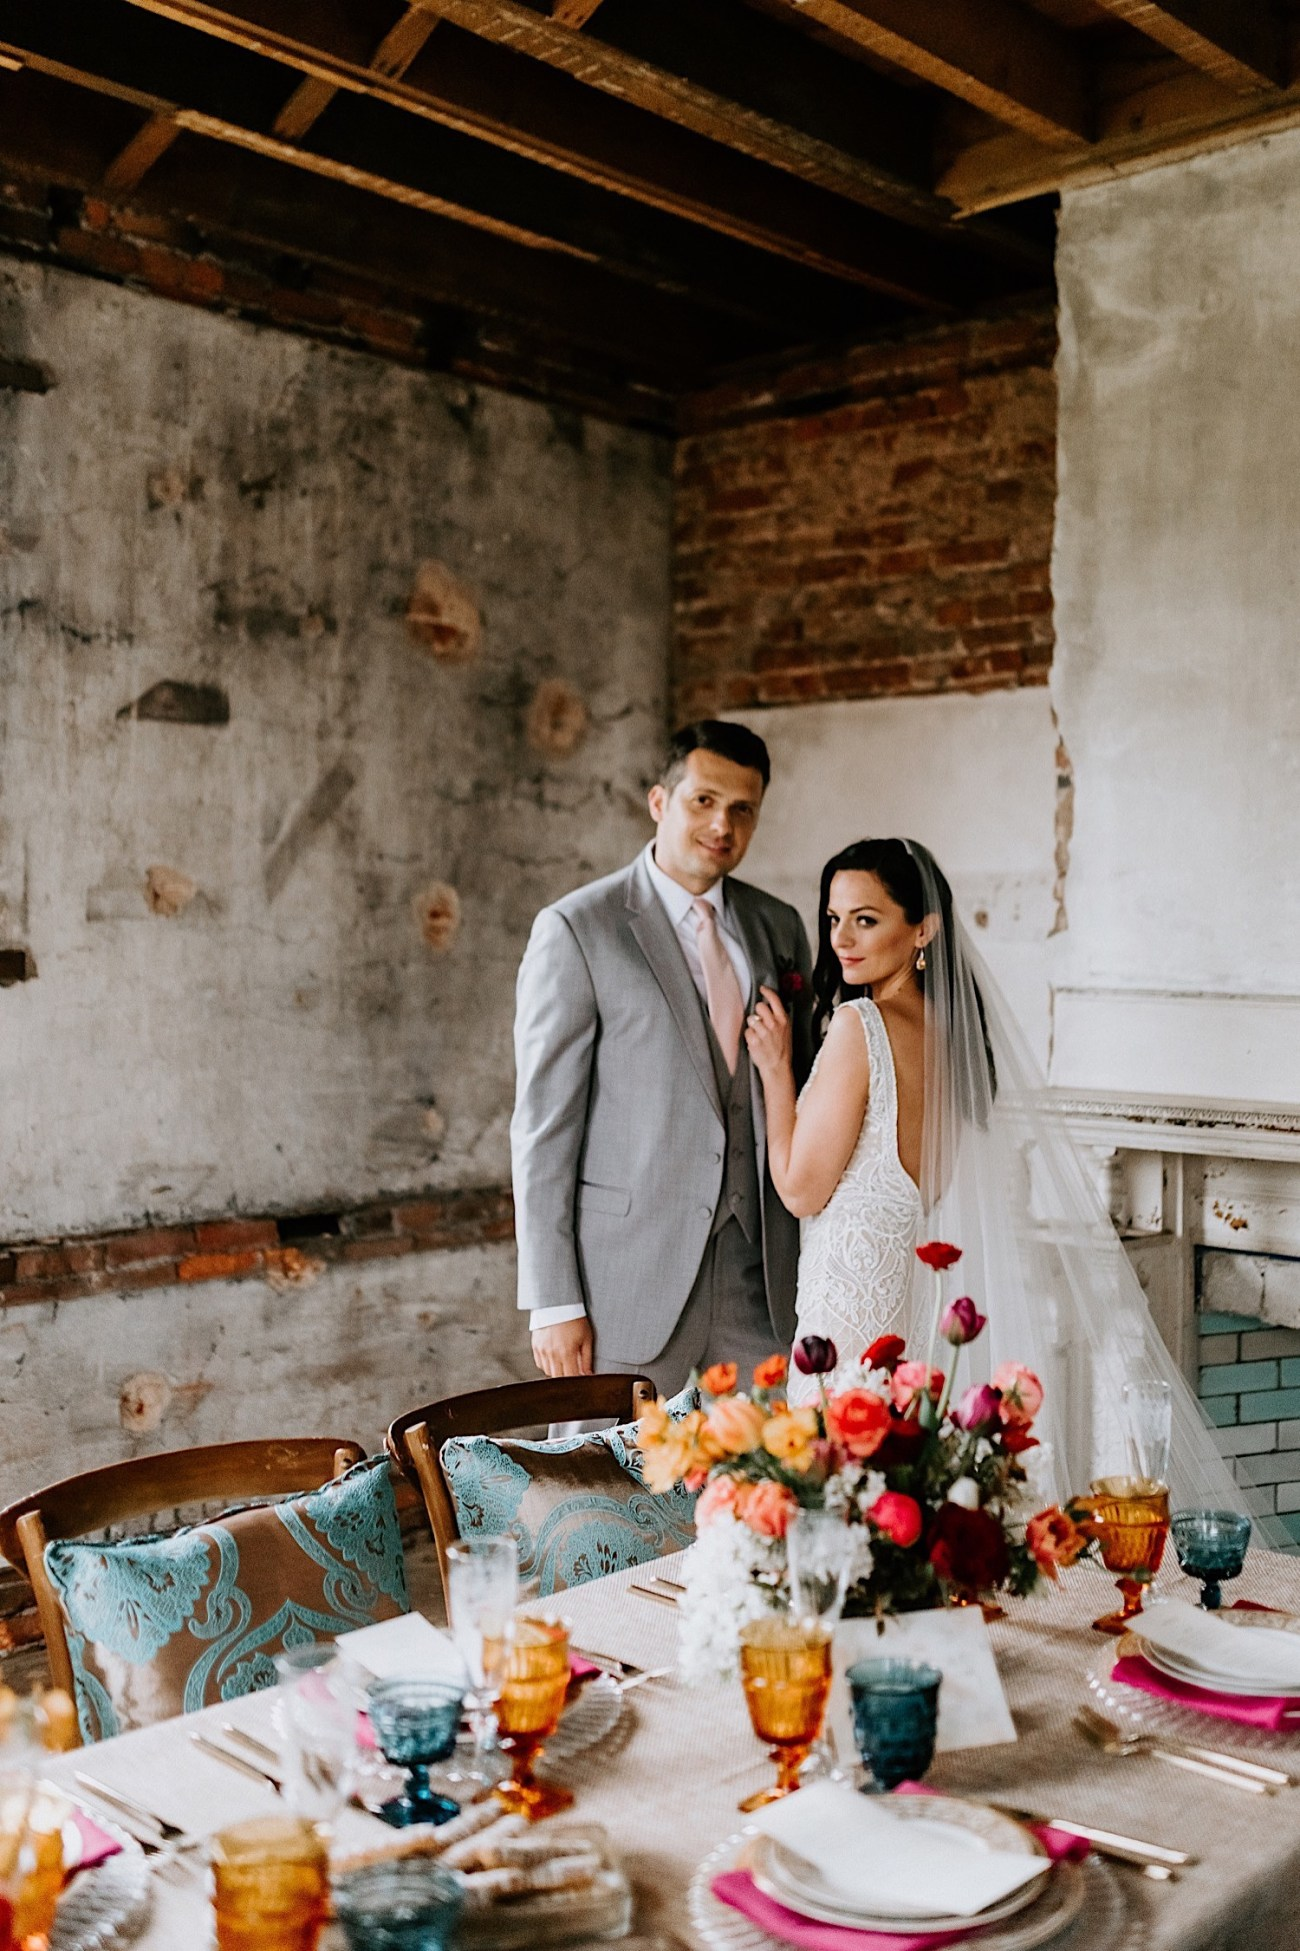 Barnsley Manor Wedding Philadelphia Wedding Photographer Hacienda Wedding Inspiration 51